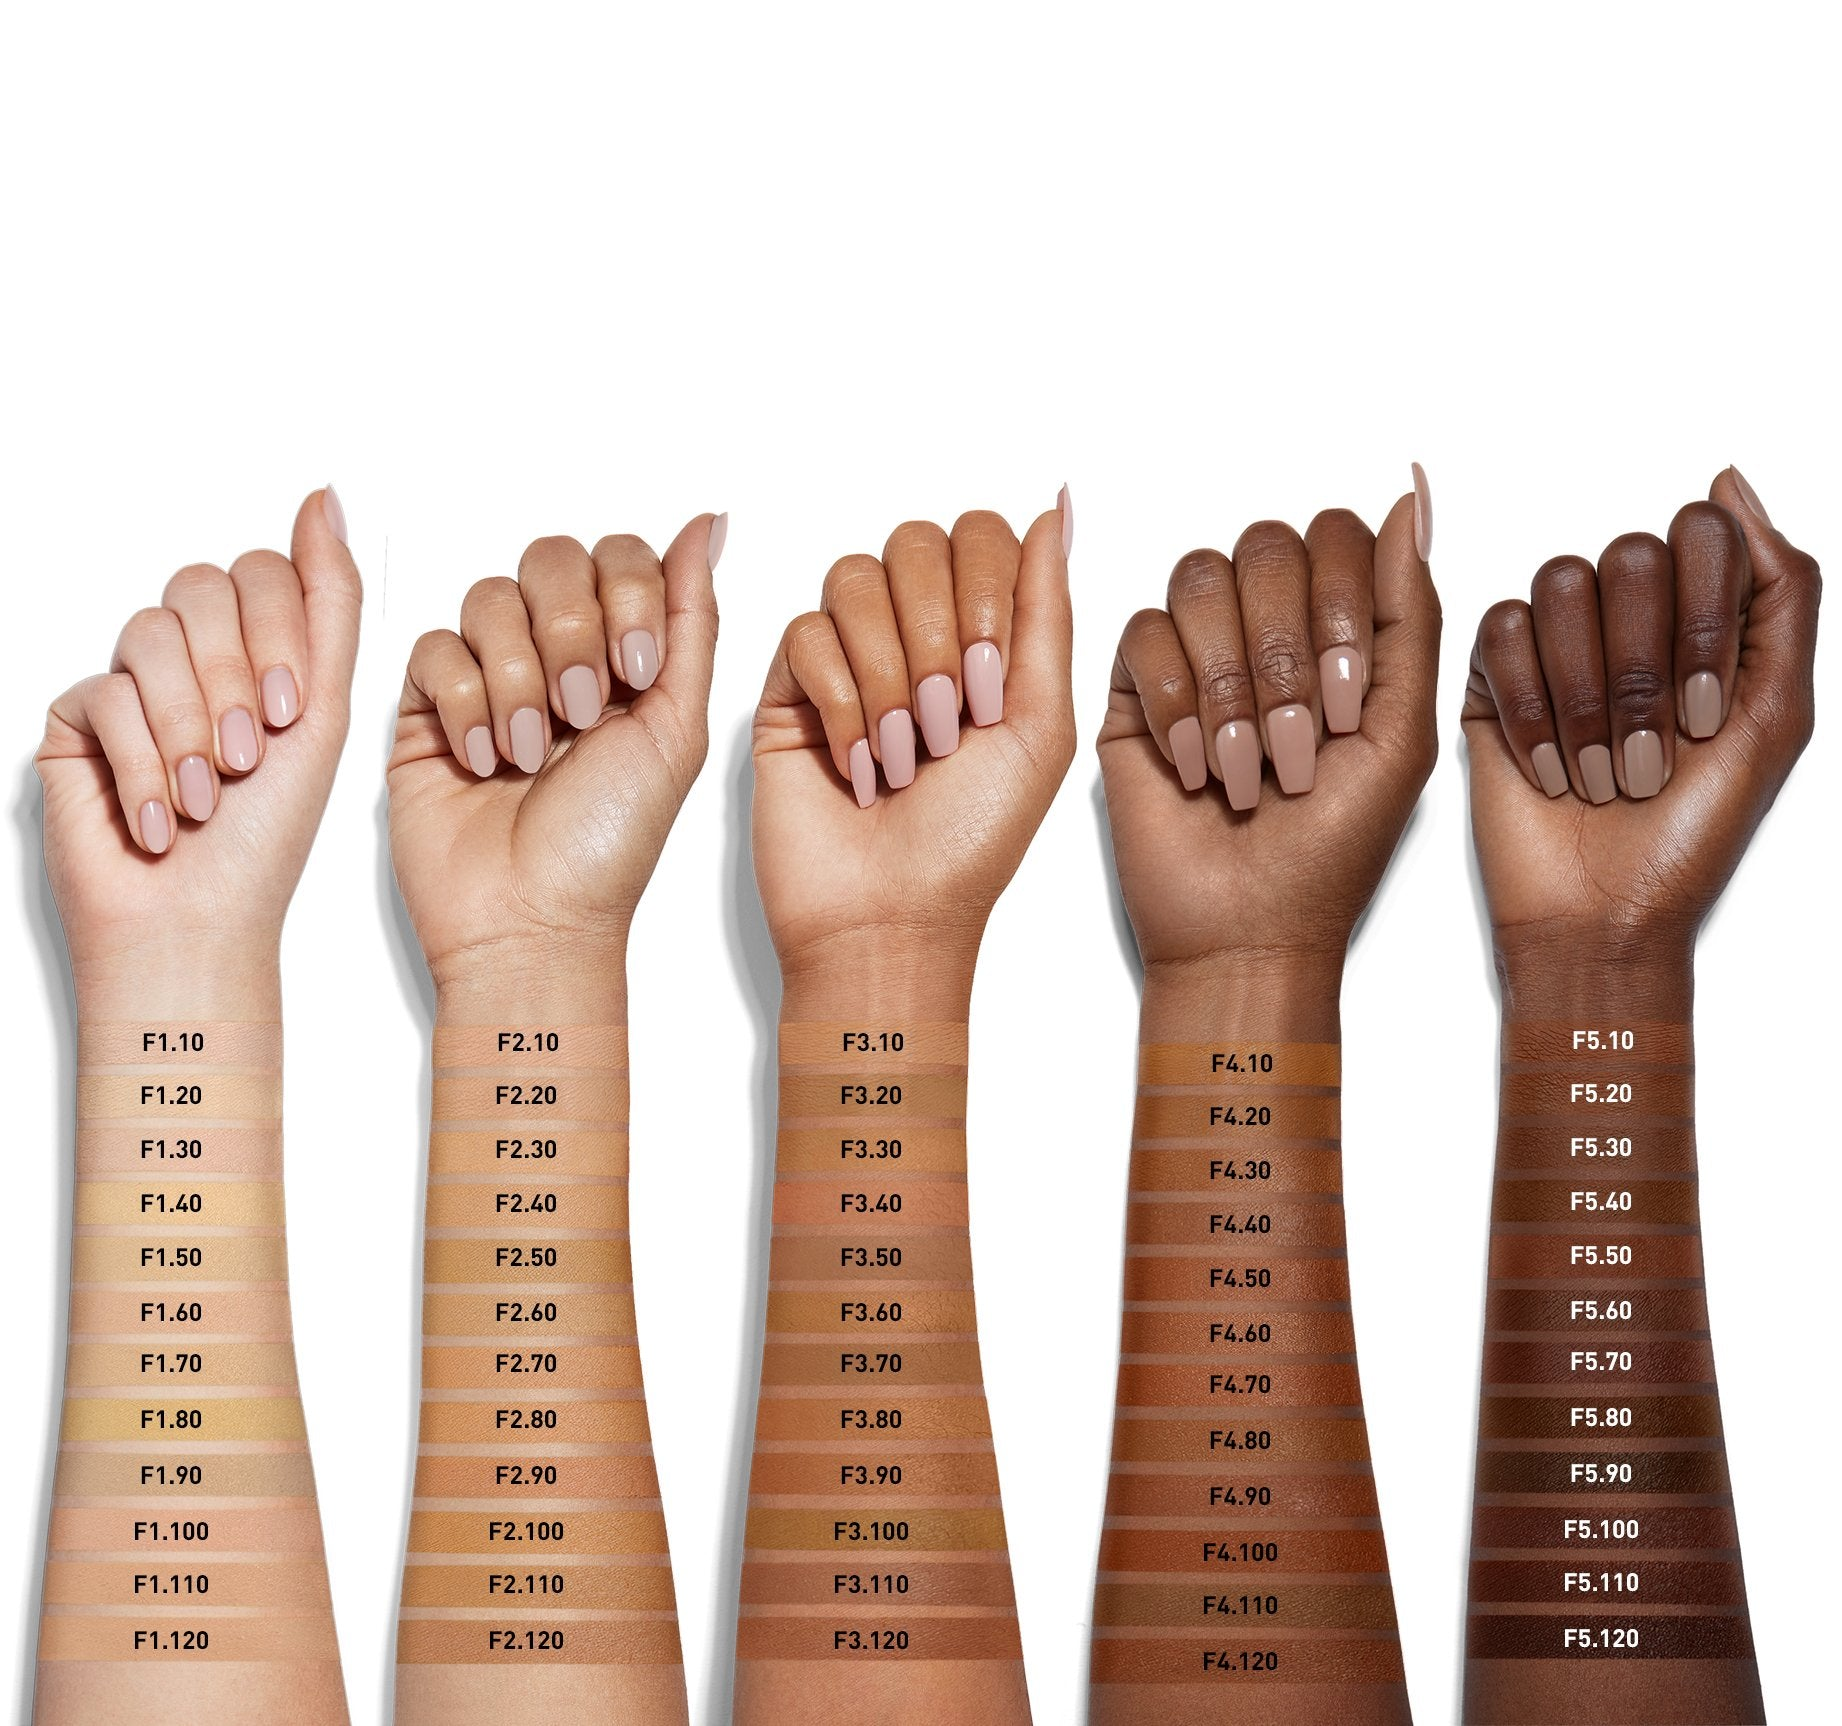 FLUIDITY FULL-COVERAGE FOUNDATION - F3.80 ARM SWATCHES, view larger image